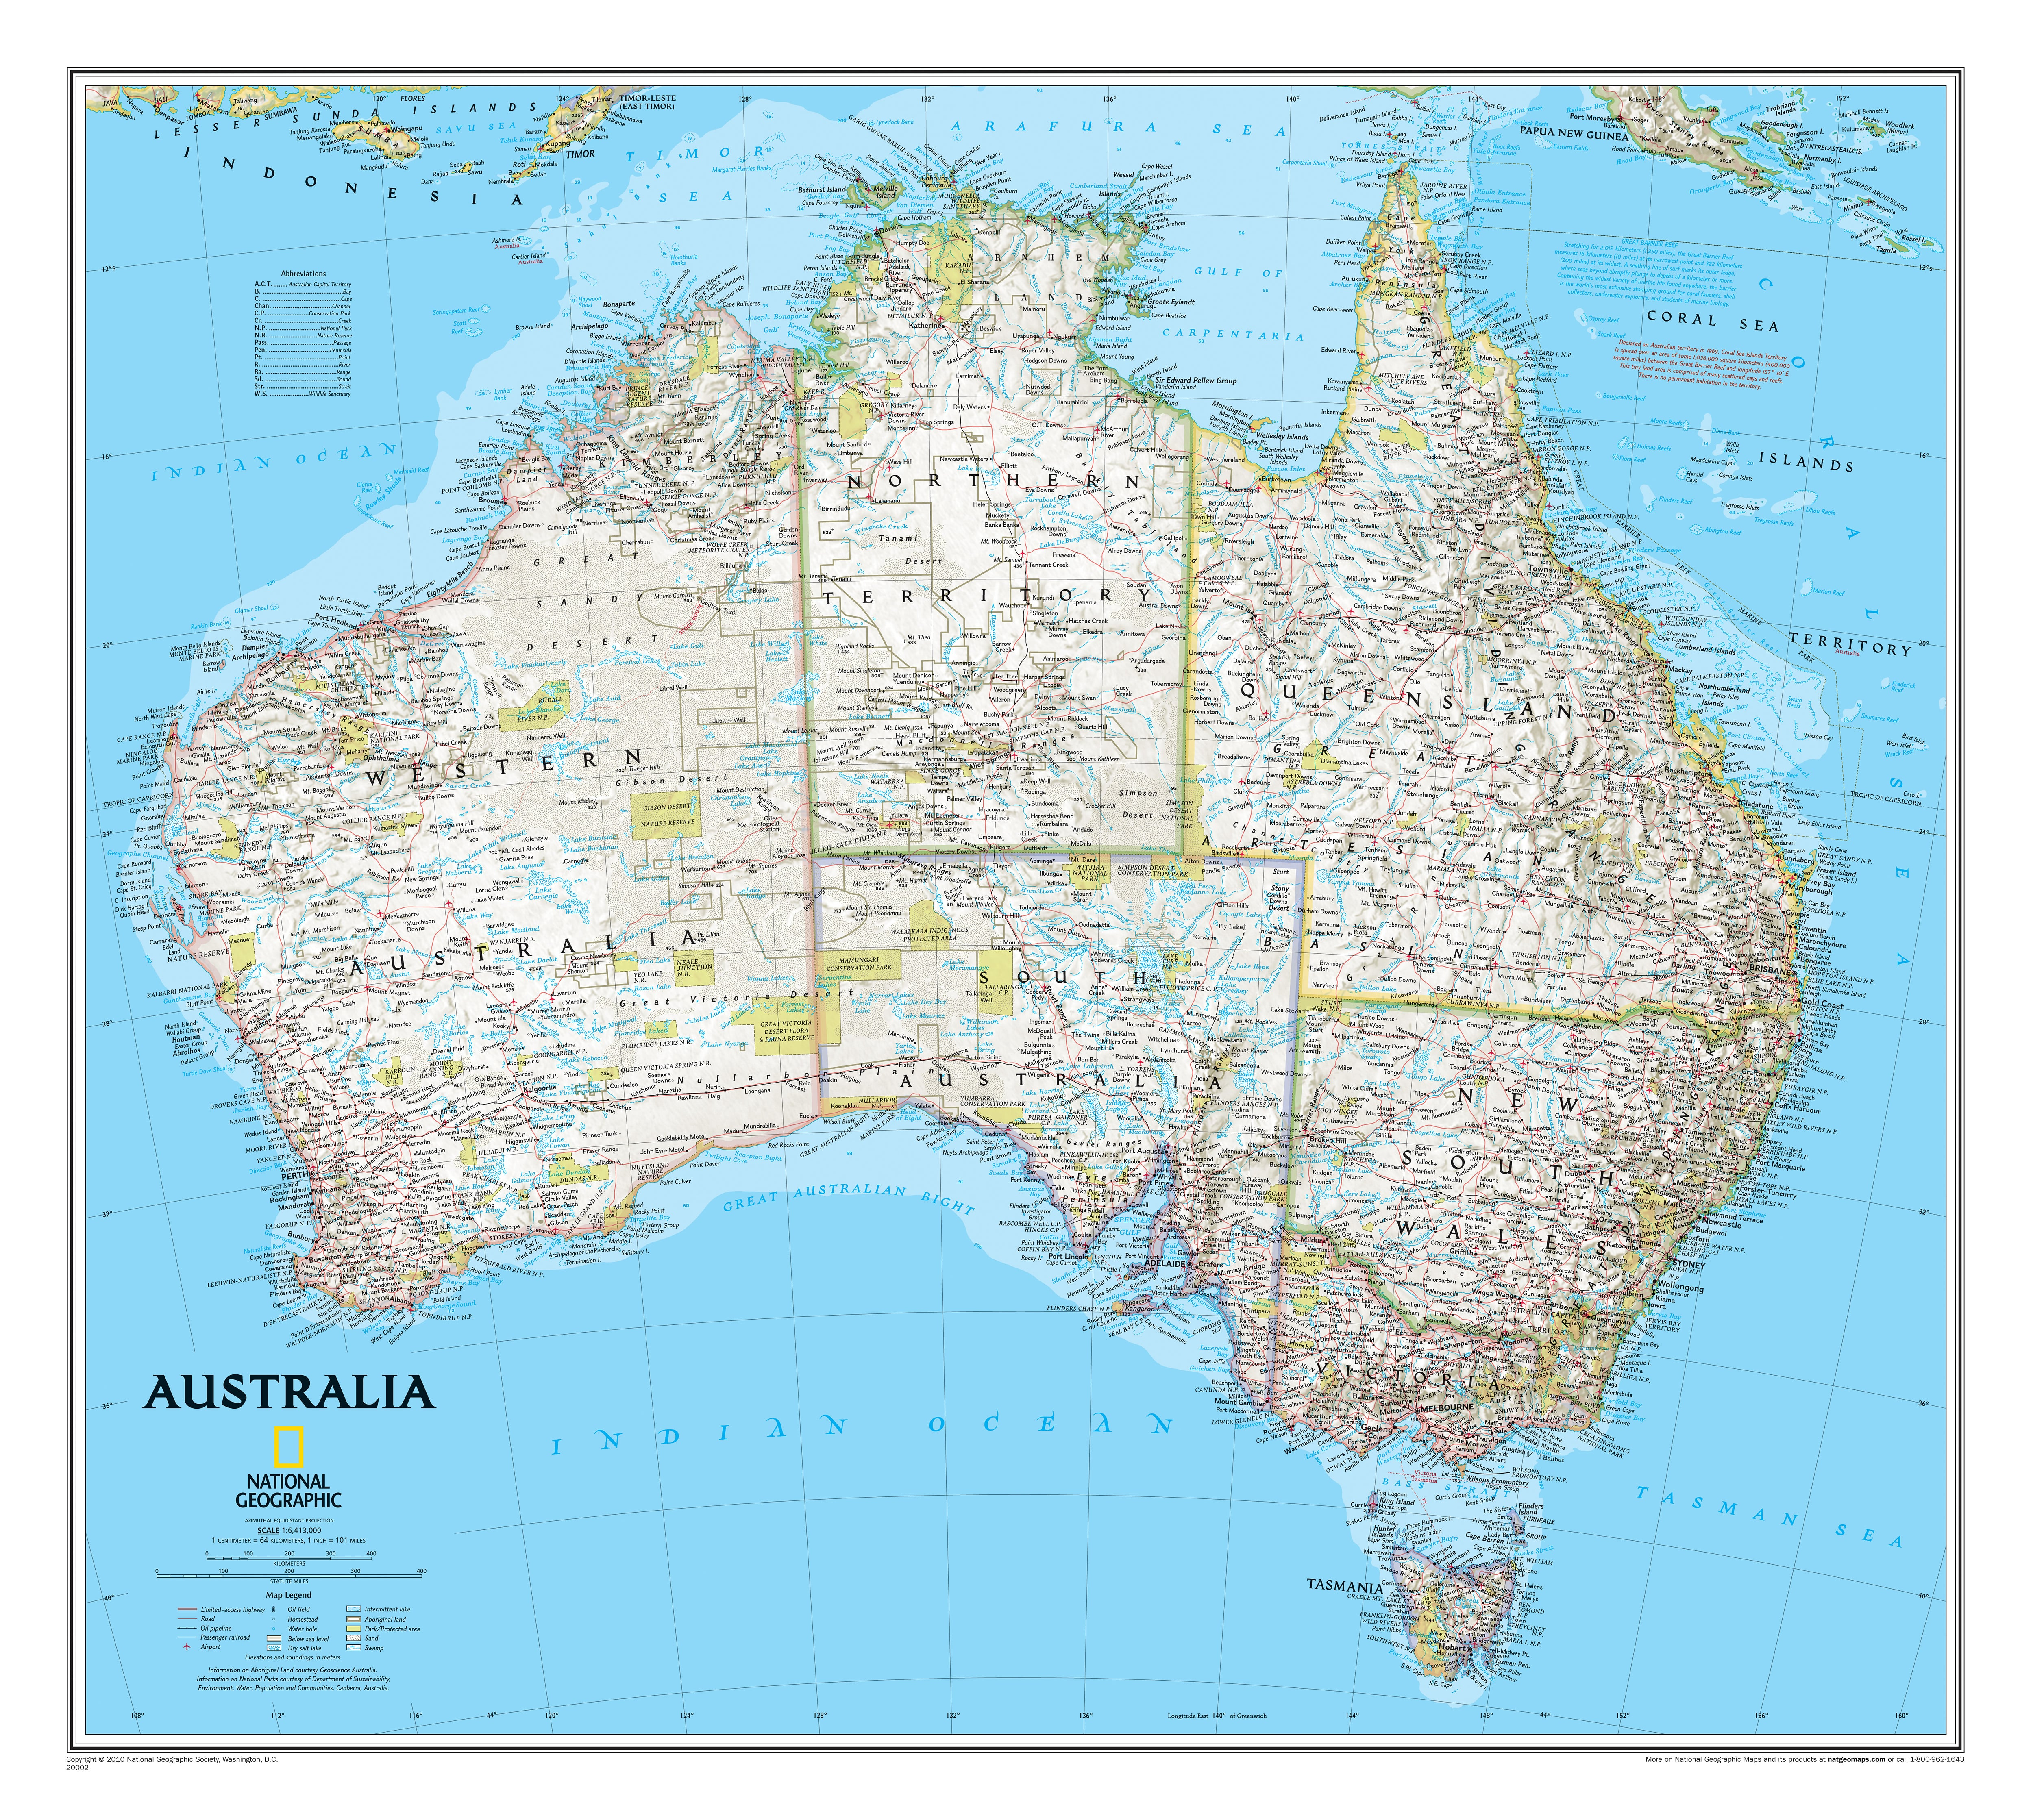 Australia Wall Map Australia Wall Maps - Buy wall map of the world